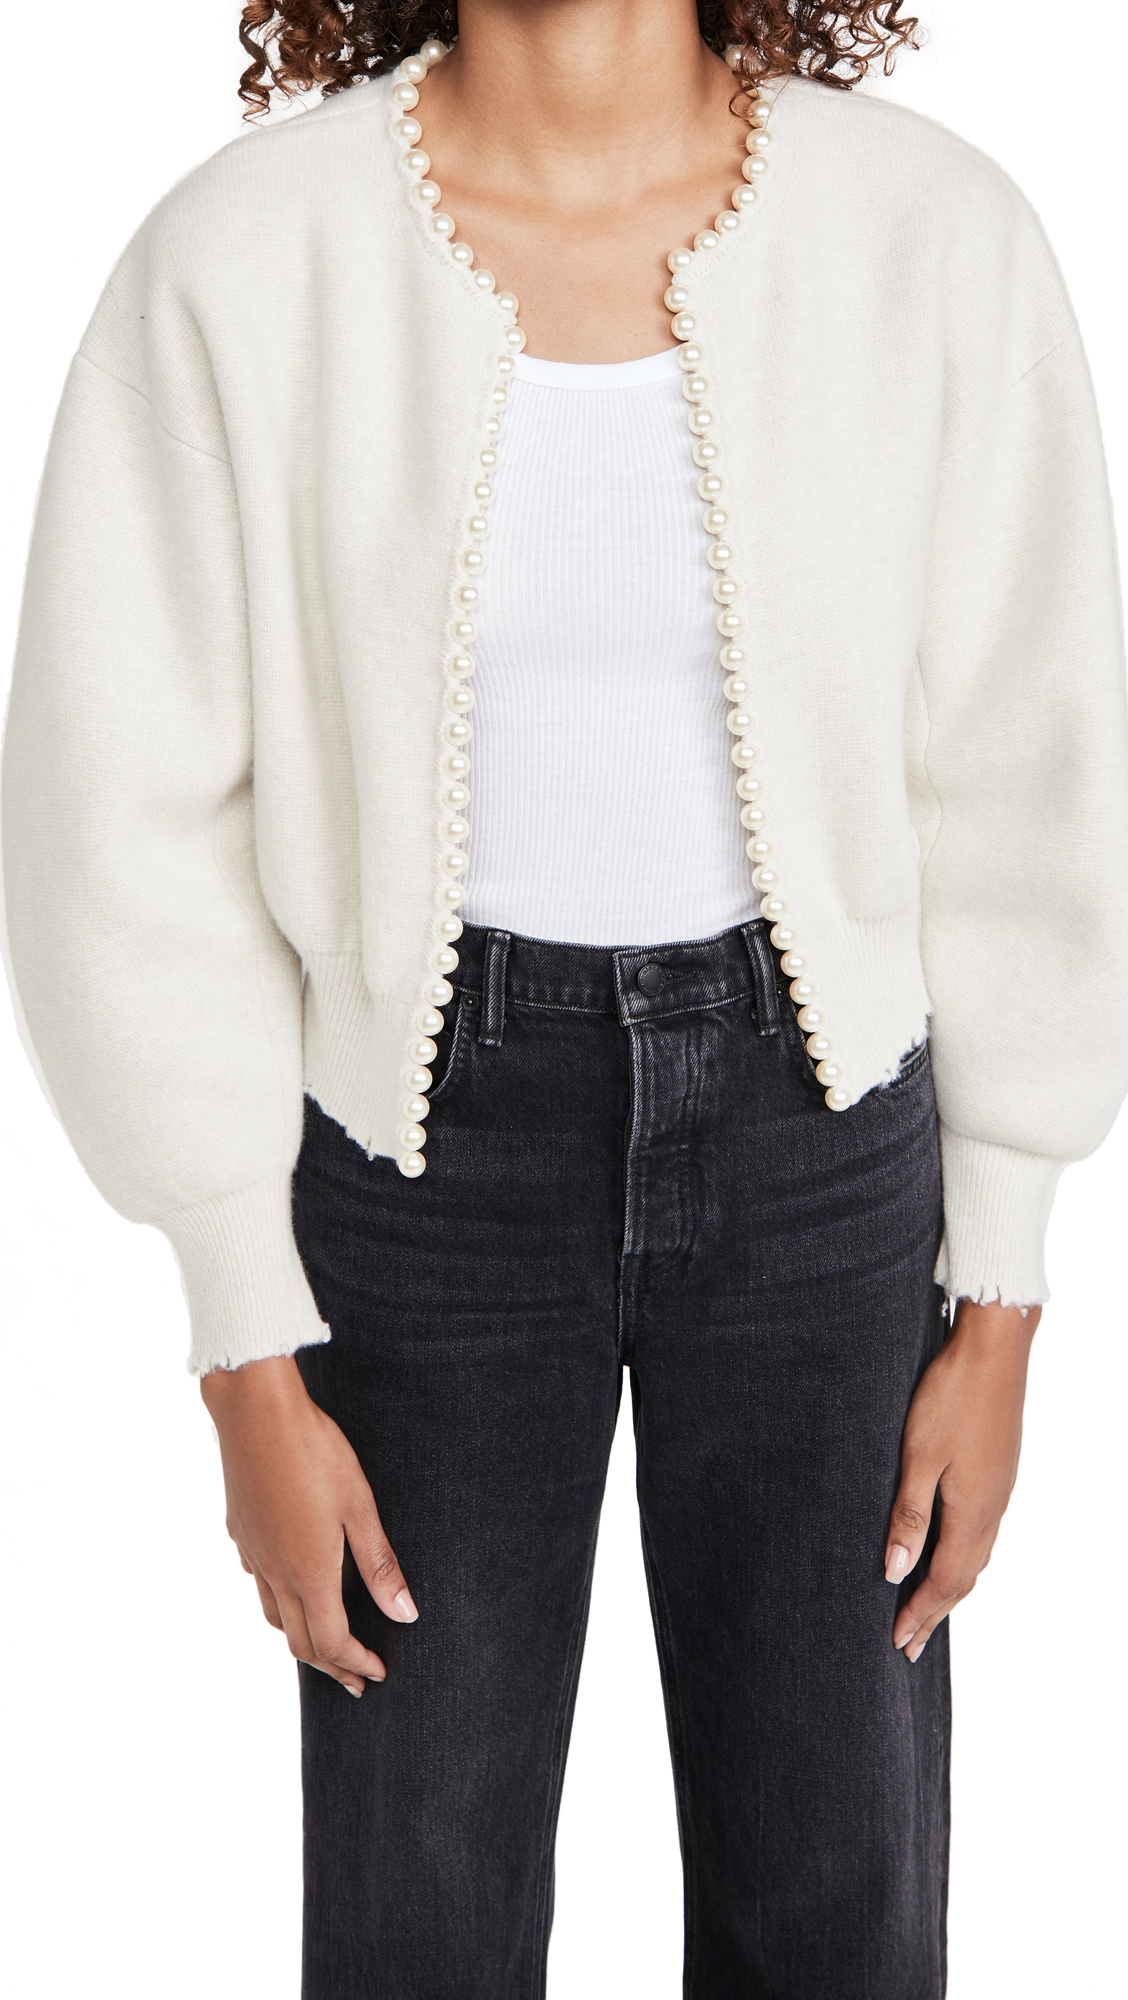 Alexander Wang Cropped Cardigan with Imitation Pearl Placket